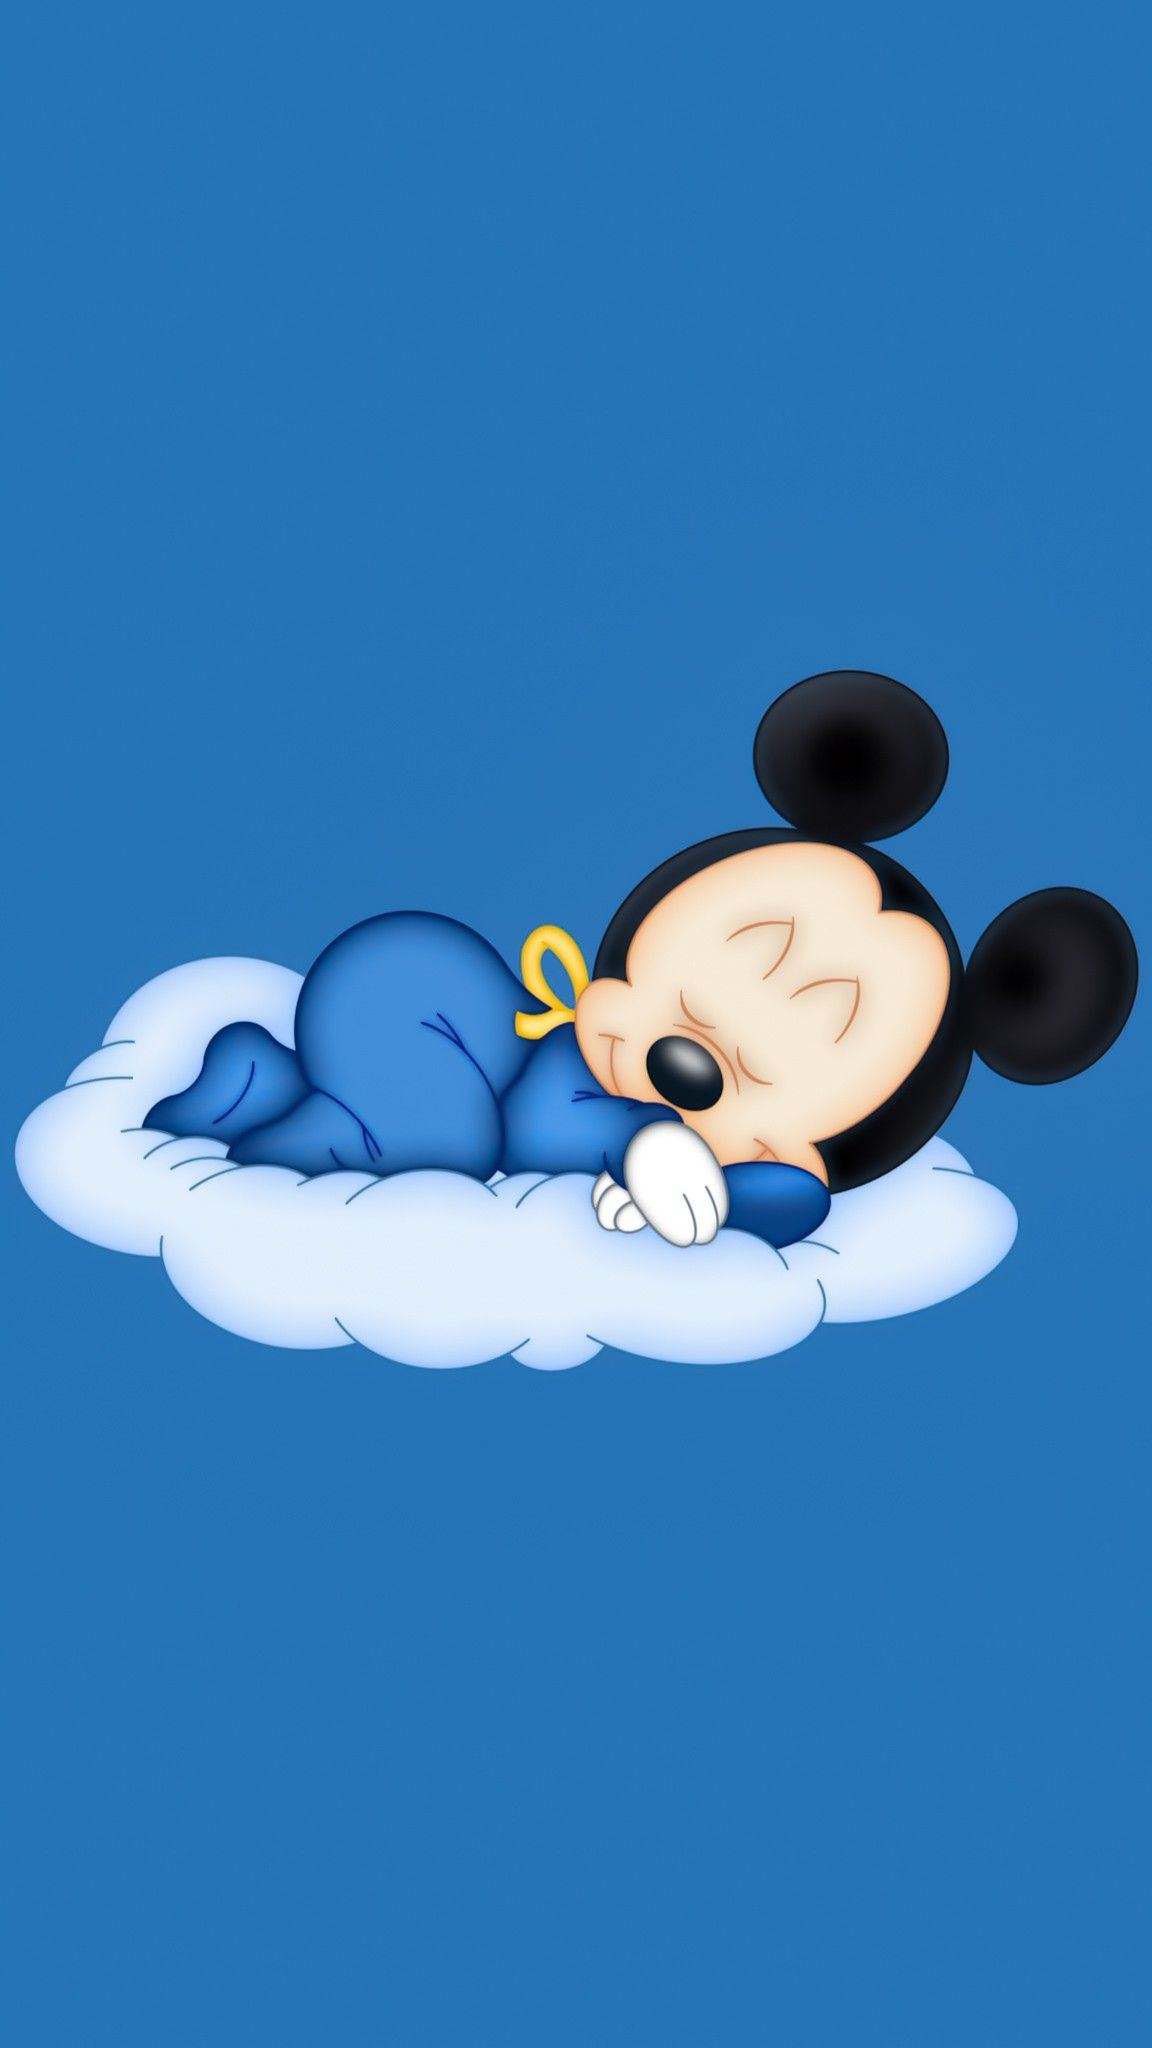 Pin By Apoame On Mickey Minnie Mouse Bg Mickey Mouse Wallpaper Mickey Mouse Art Cute Disney Wallpaper